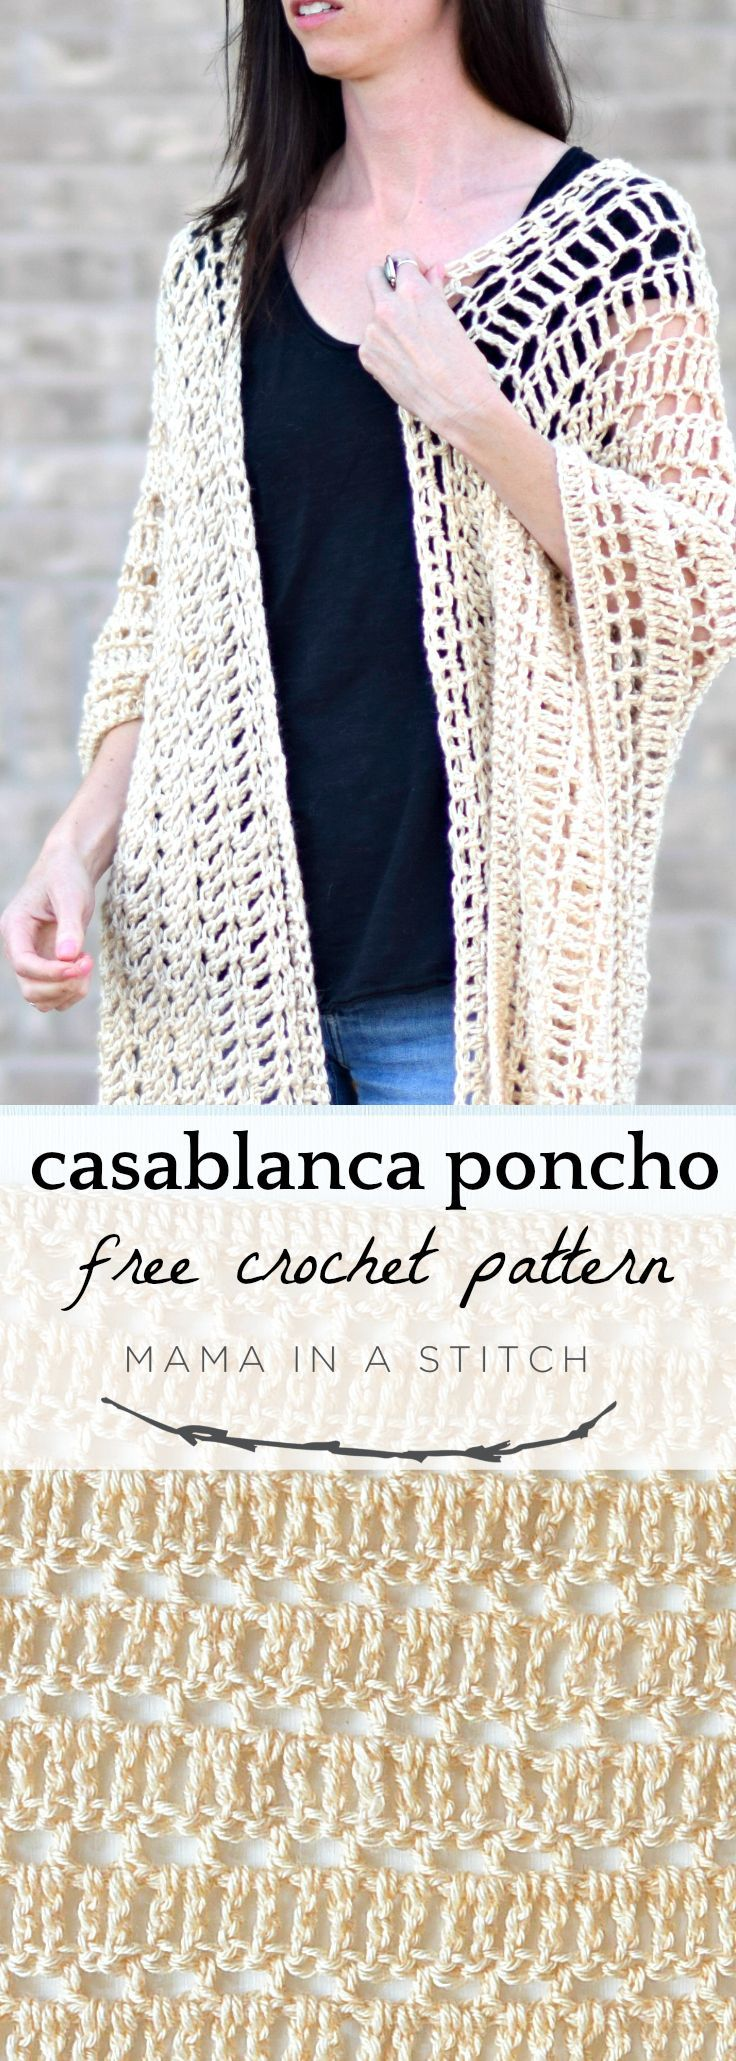 348 best Tejidos images on Pinterest | Crochet patterns, Crafts and ...